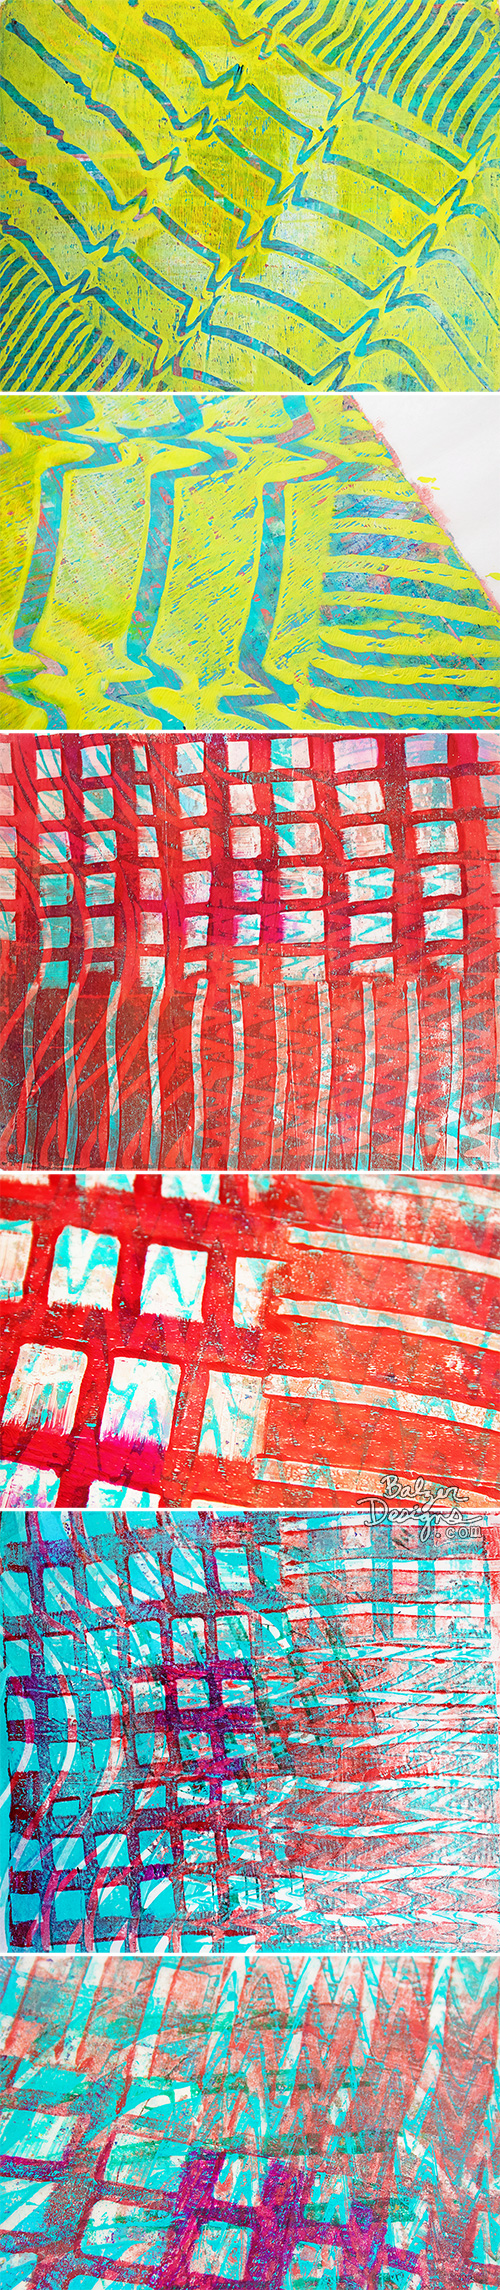 from the Balzer Designs Blog: Exploring Gelli Tools: Square Combs (video review in post)